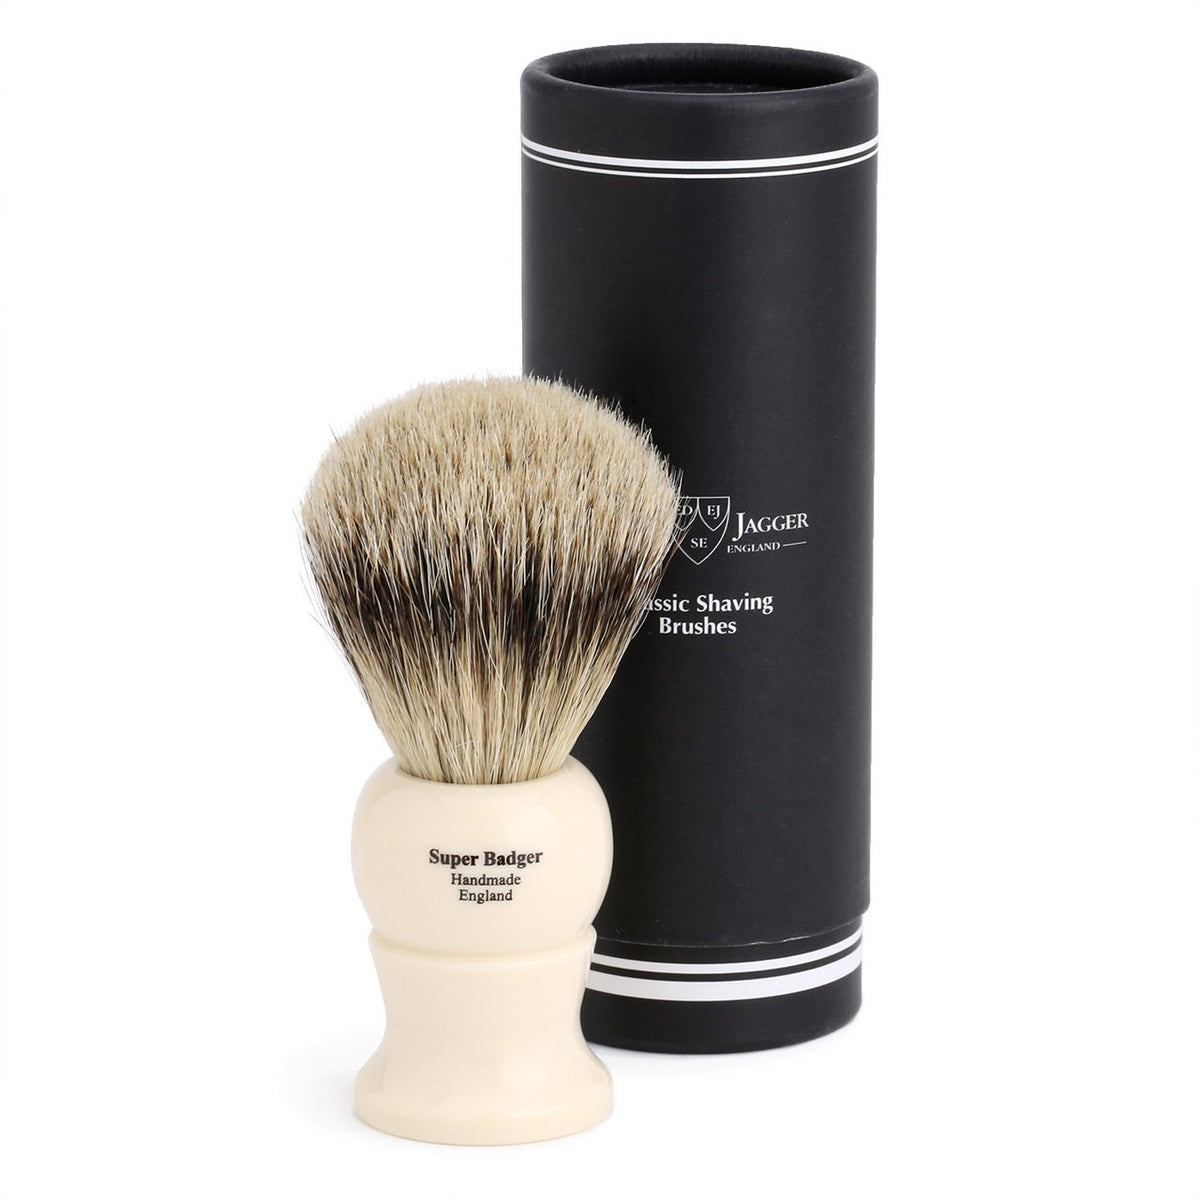 Edwin Jagger Super Badger Large Shaving Brush - Imitation Ivory